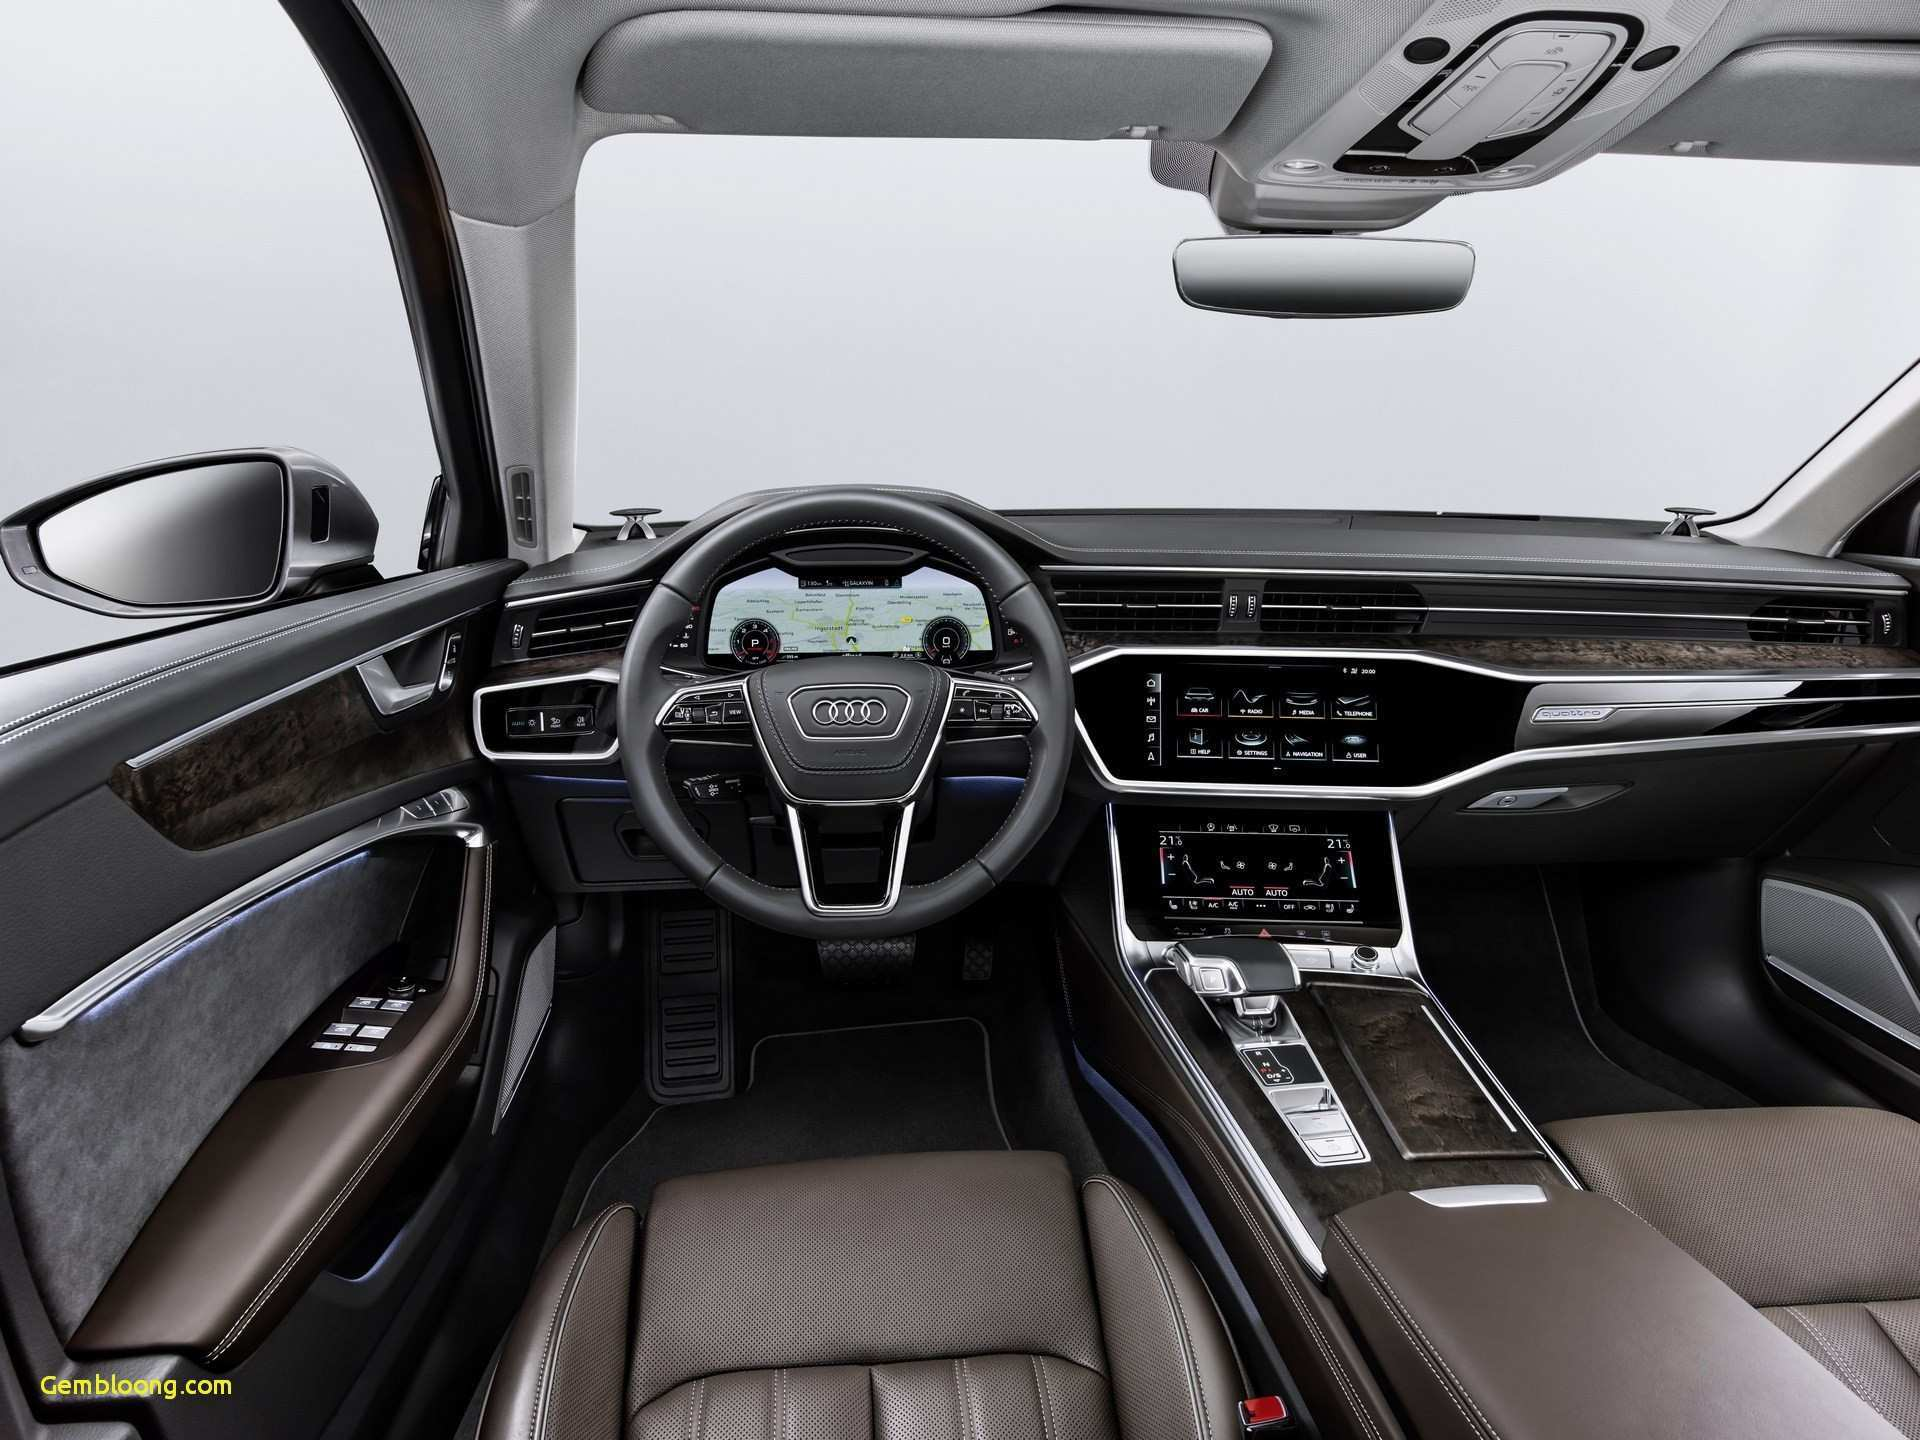 44 The Best 2020 Chevy Impala Ss Ltz Interior